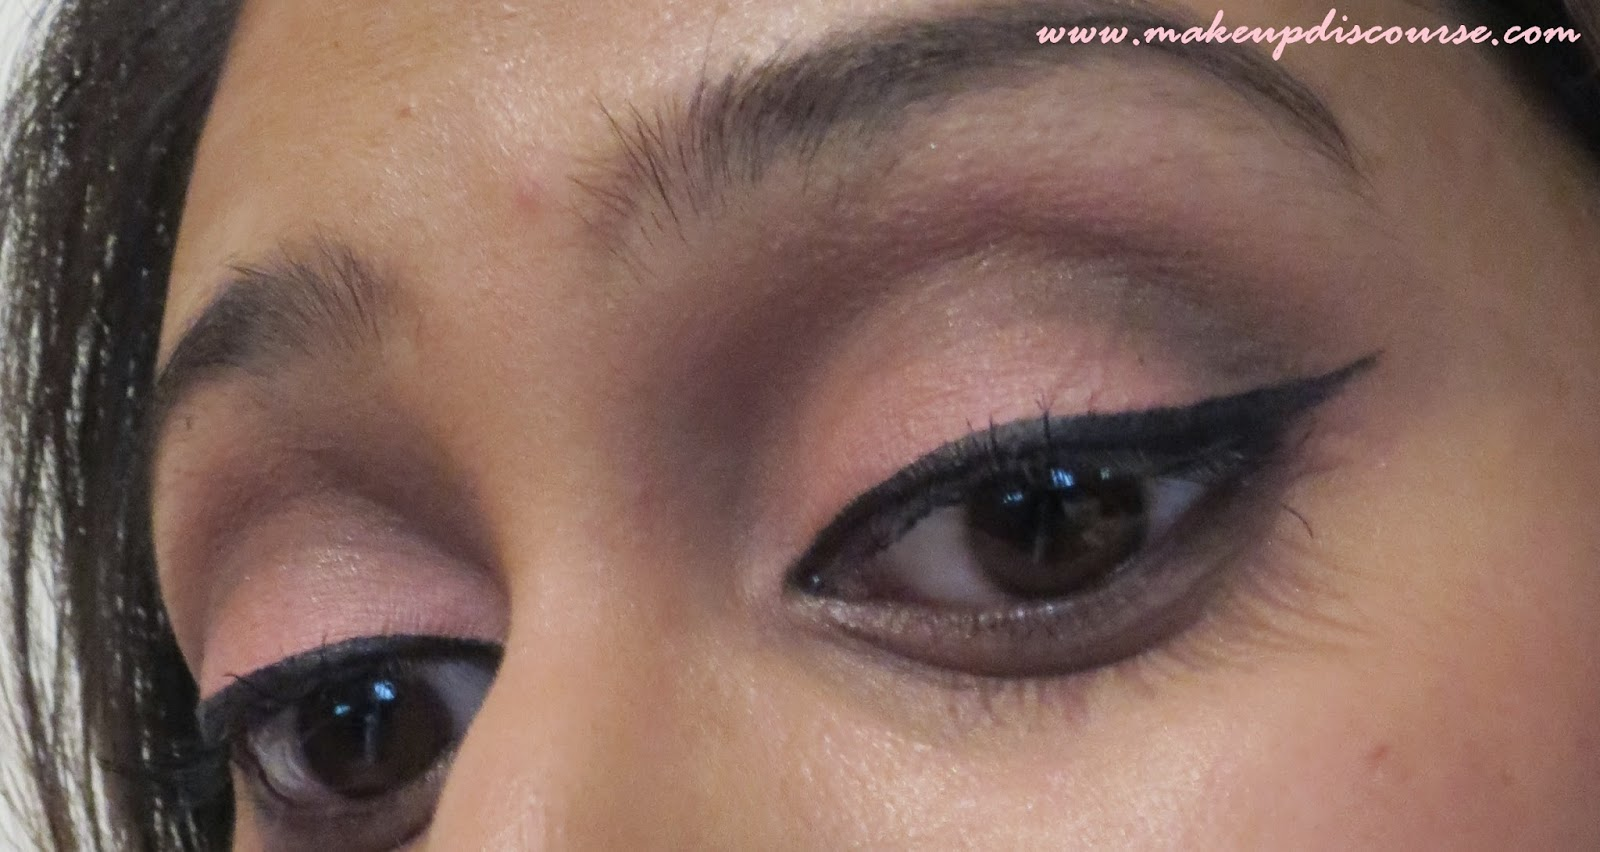 Spring Inspired: Pastel Coral Pink and Brown Eyemakeup